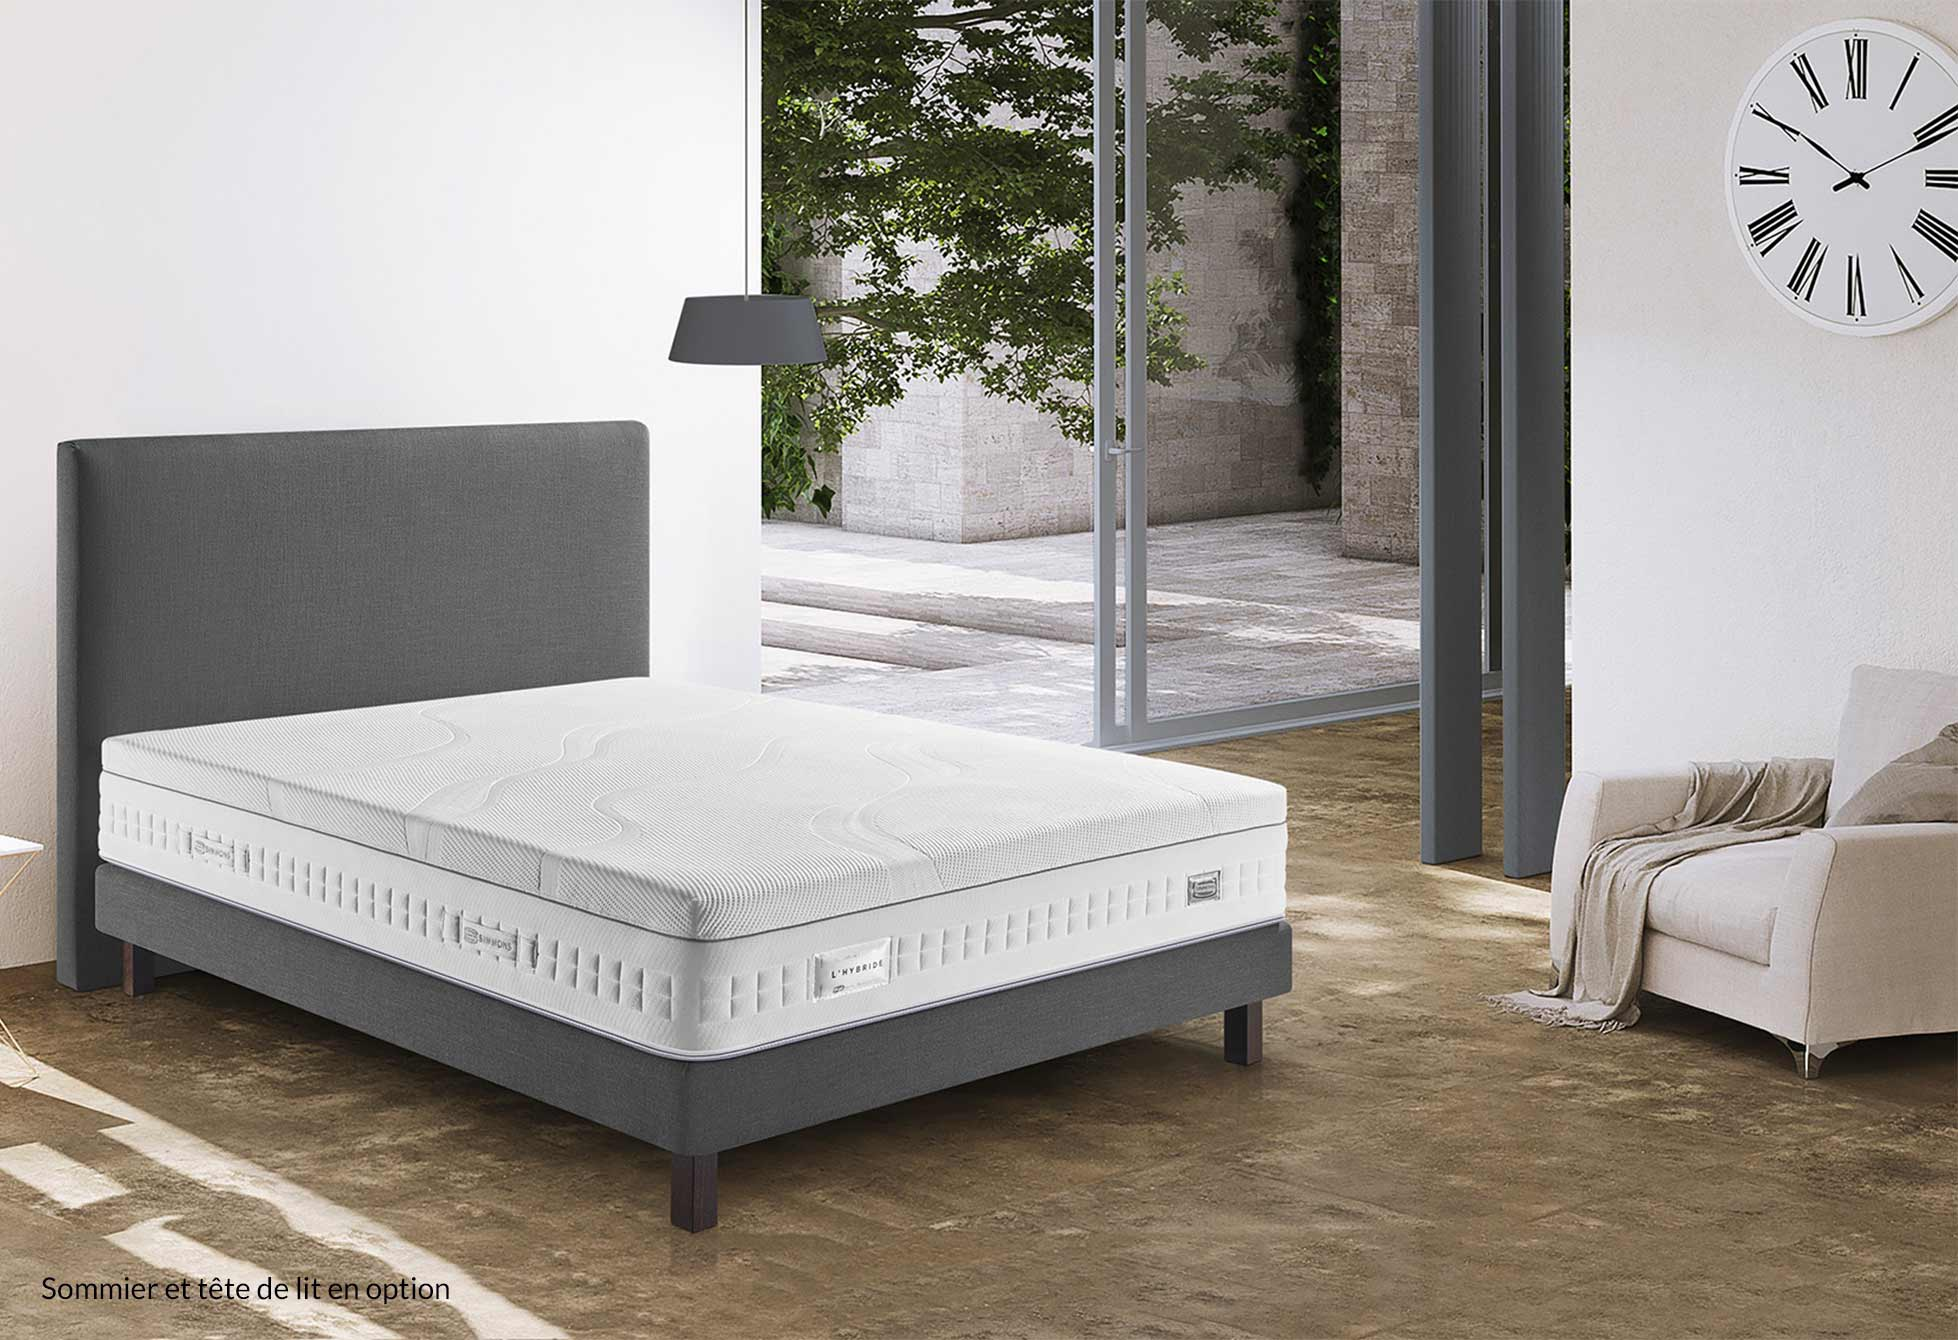 ... Matelas Ressorts Simmons HYBRIDE 713 120x190 (1 pers)